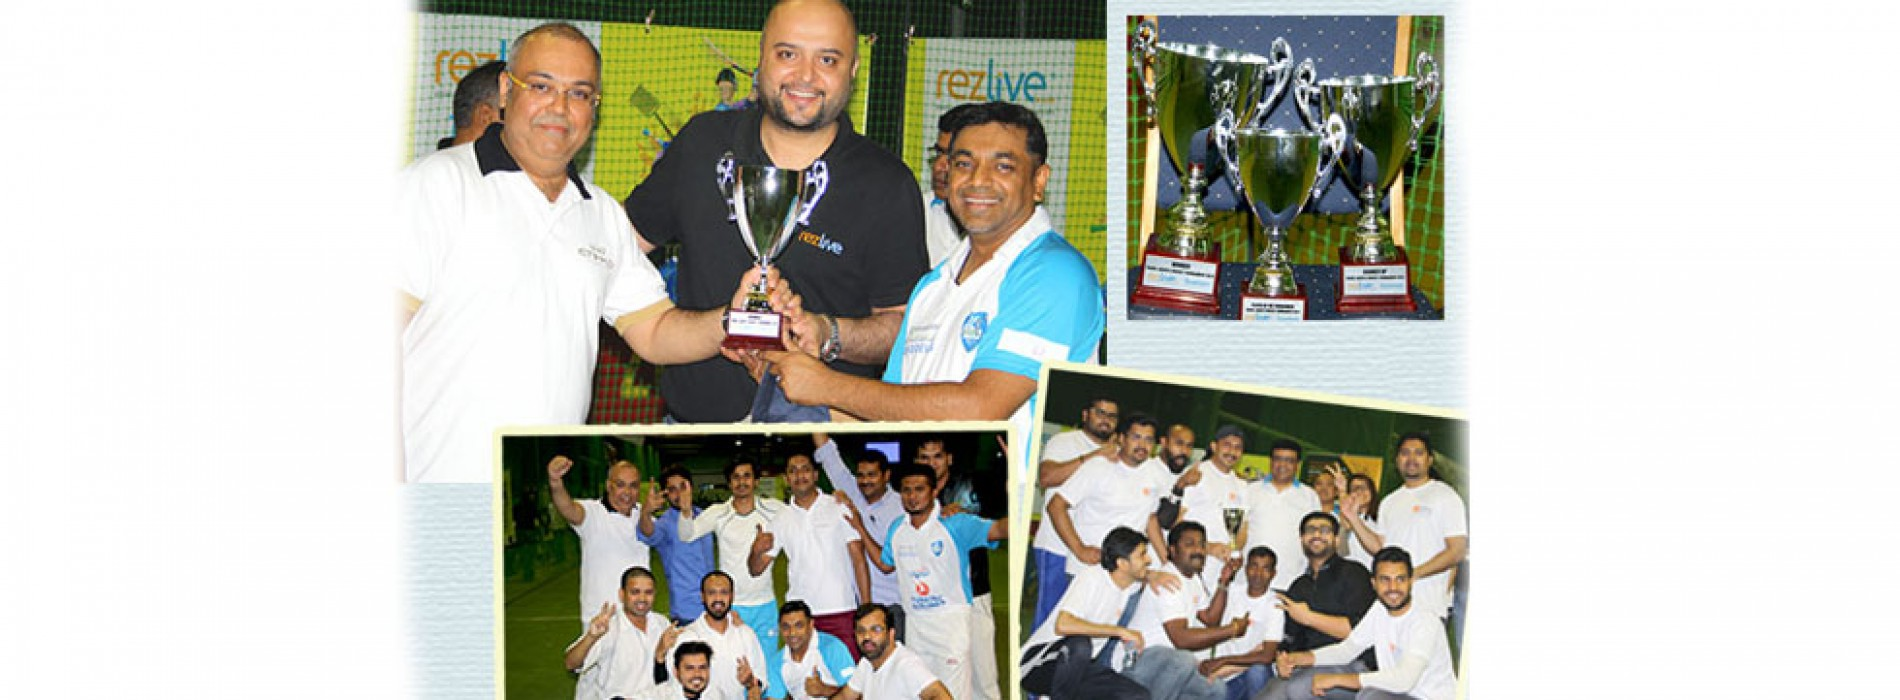 Omeir Travel wins RezLive.com-Travelwebme 2016 Cricket Tournament